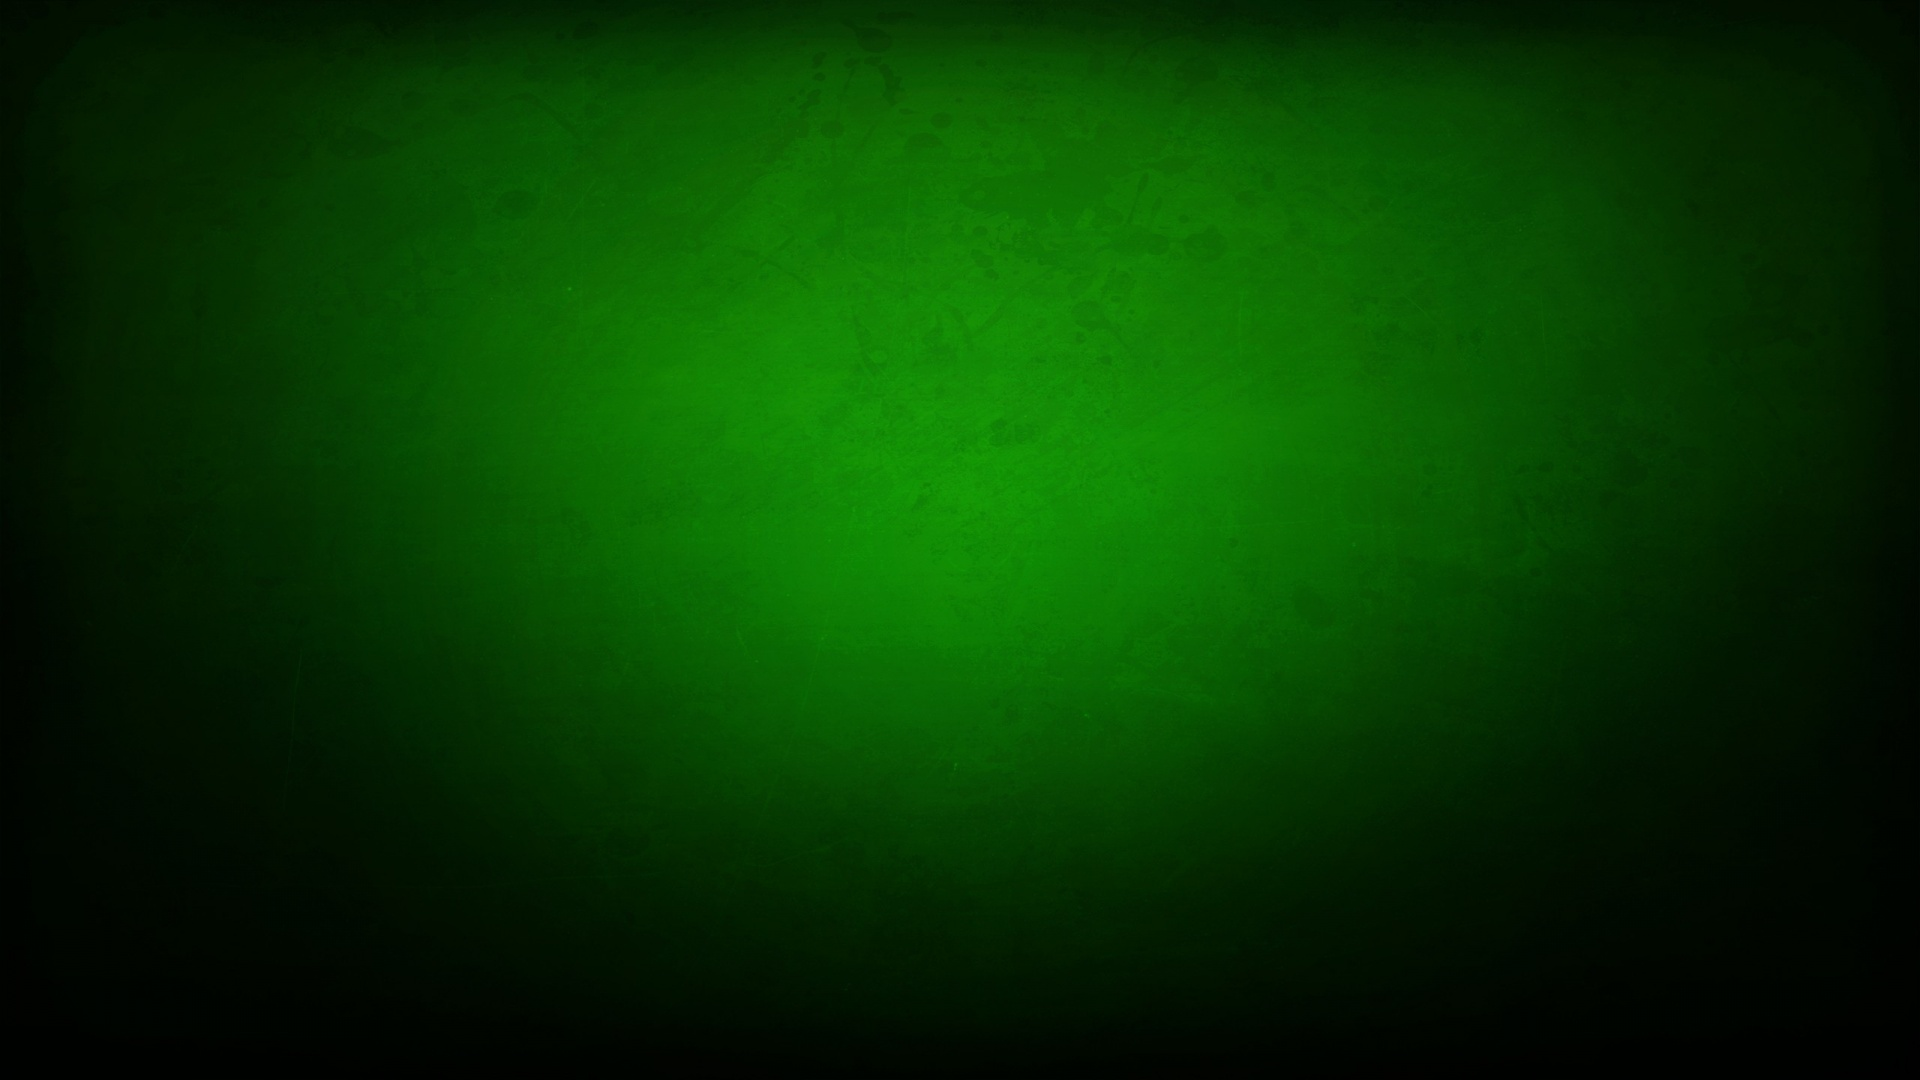 1920x1080 Grunge Green desktop PC and Mac wallpaper 1920x1080